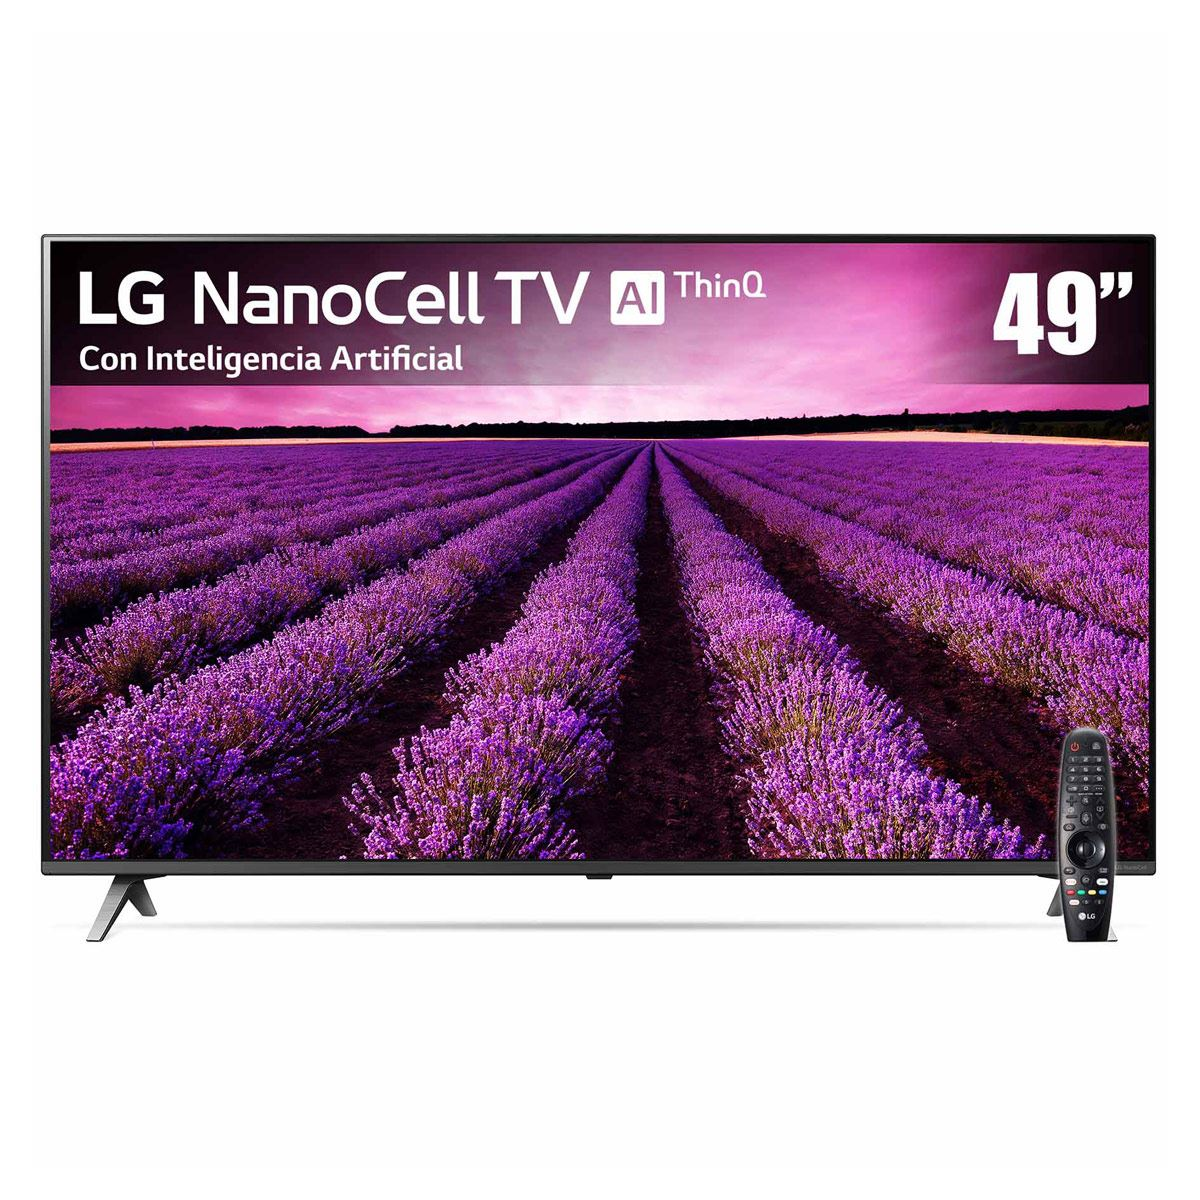 "Pantalla LG 49"" Nanocell TV AI ThinQ 4K 49SM8000"